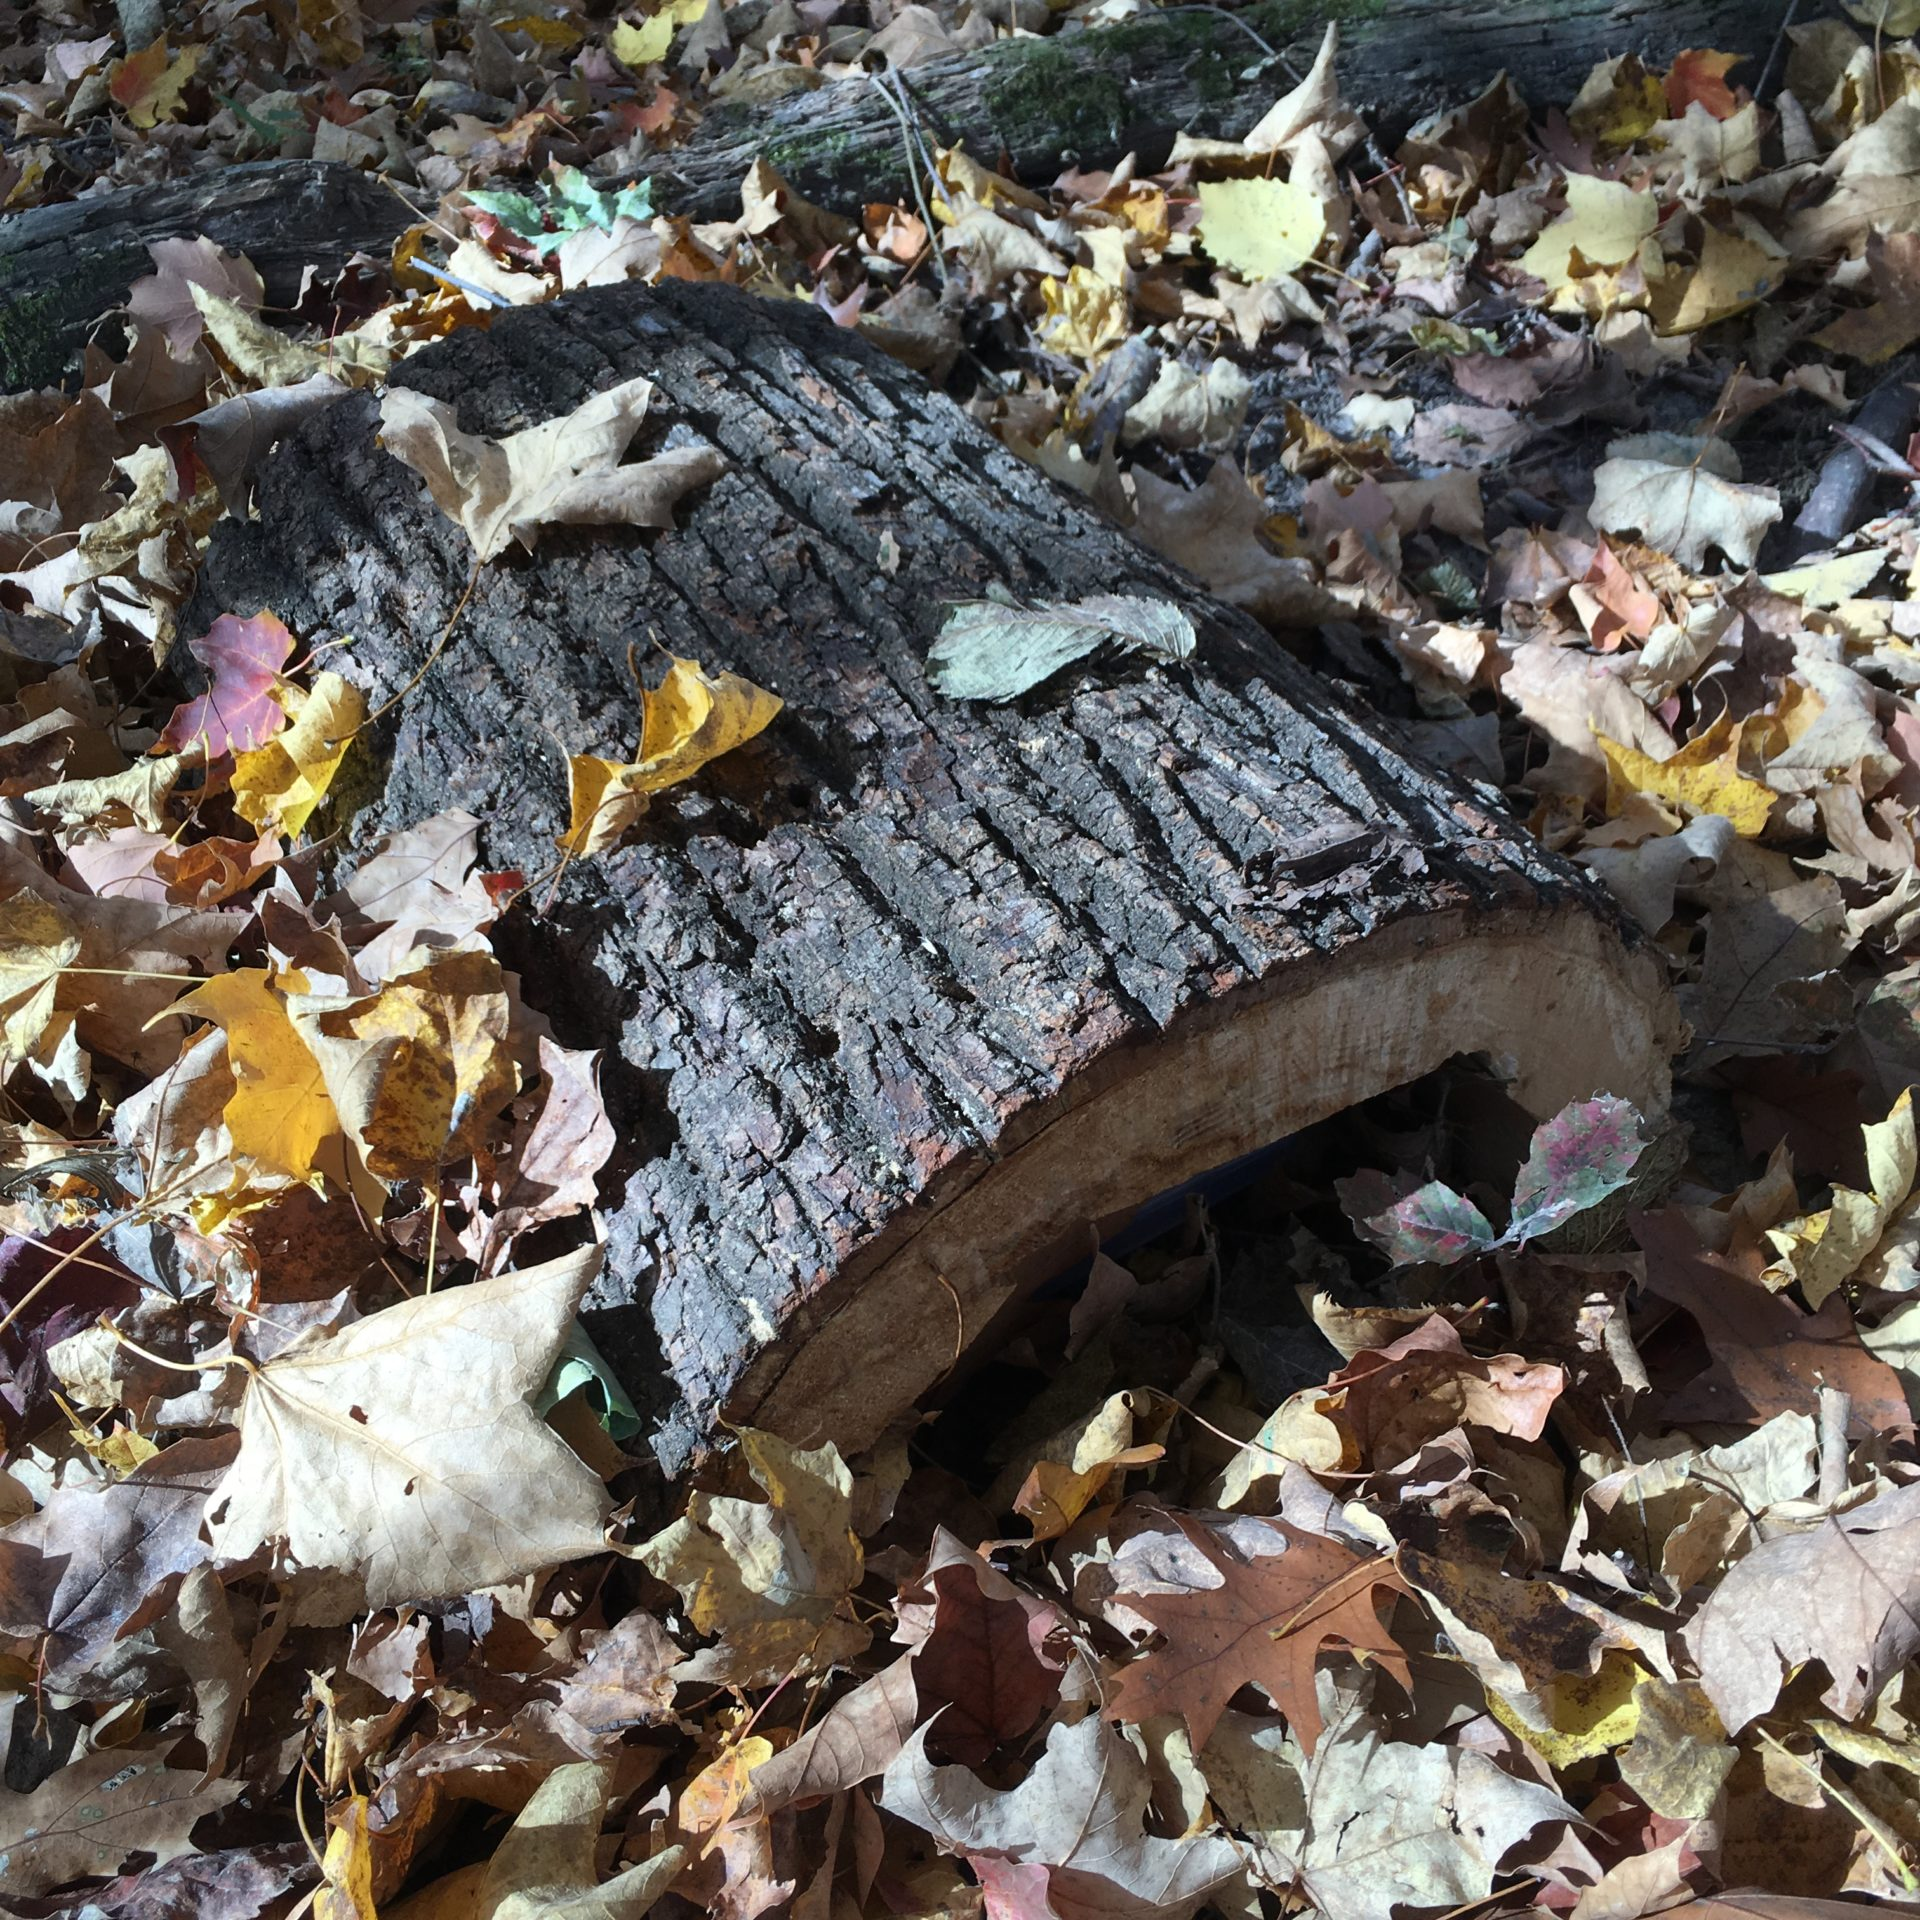 A log from a basswood tree that Winkler hollowed out to hide a cache at the Seven Mile Creek County Park